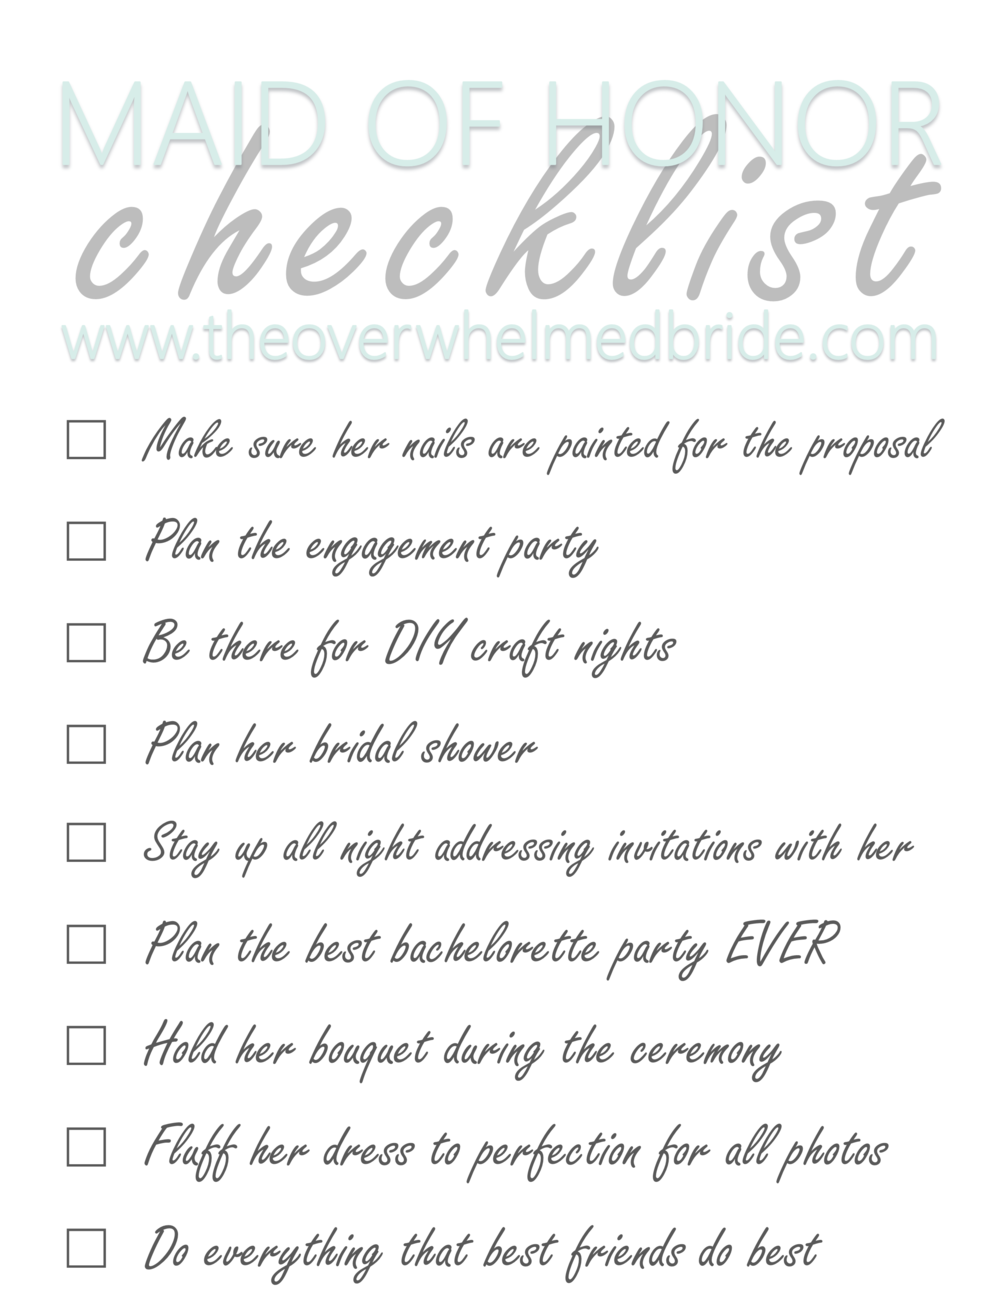 Bridal Shower Checklist | Maid Of Honor Checklist The Overwhelmed Bride Wedding Blog